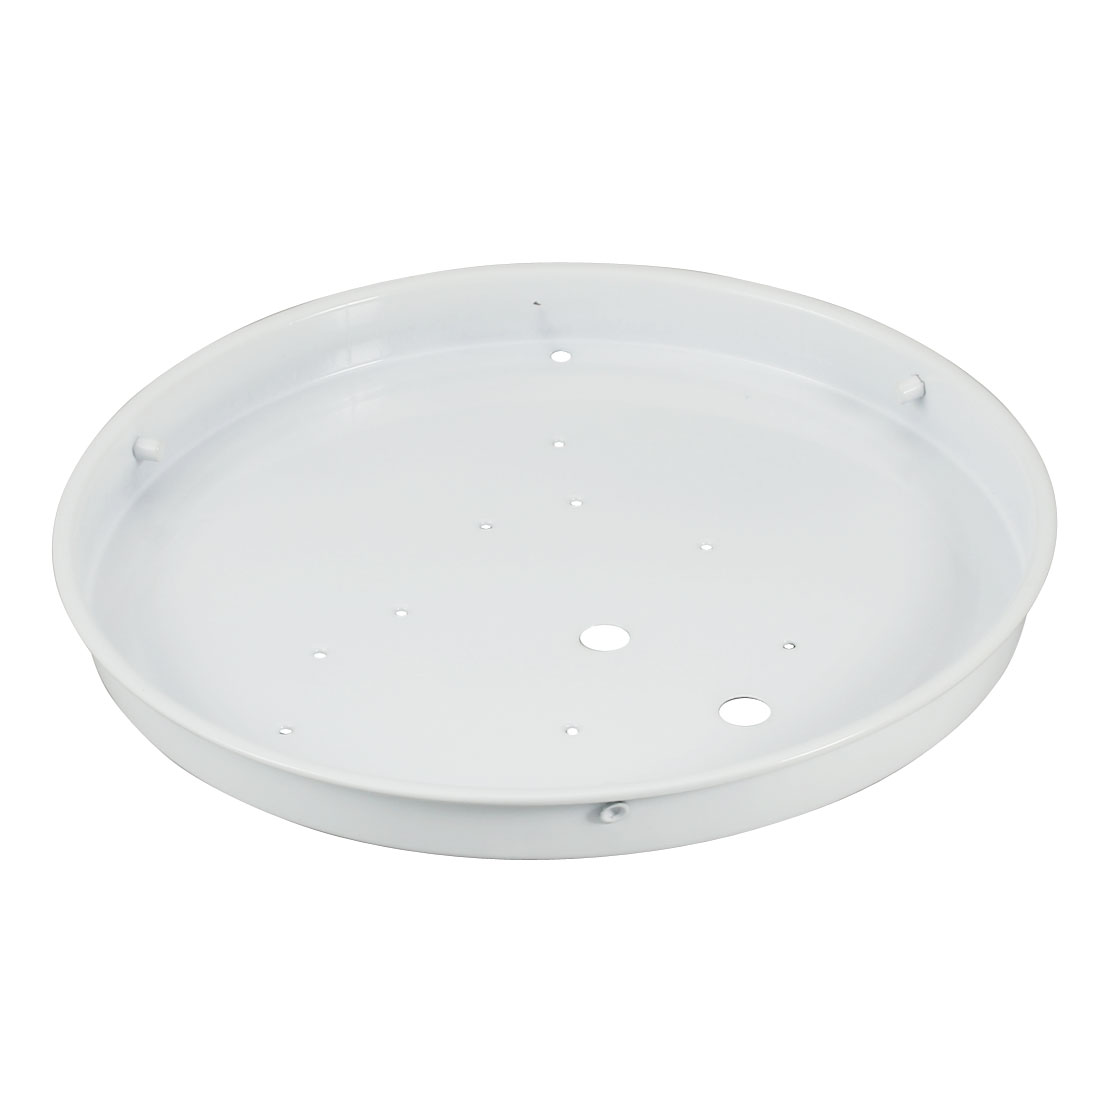 Ceiling Light Sink Mount Plate Iron Lamp Chassis Fitting for 190mm Diameter